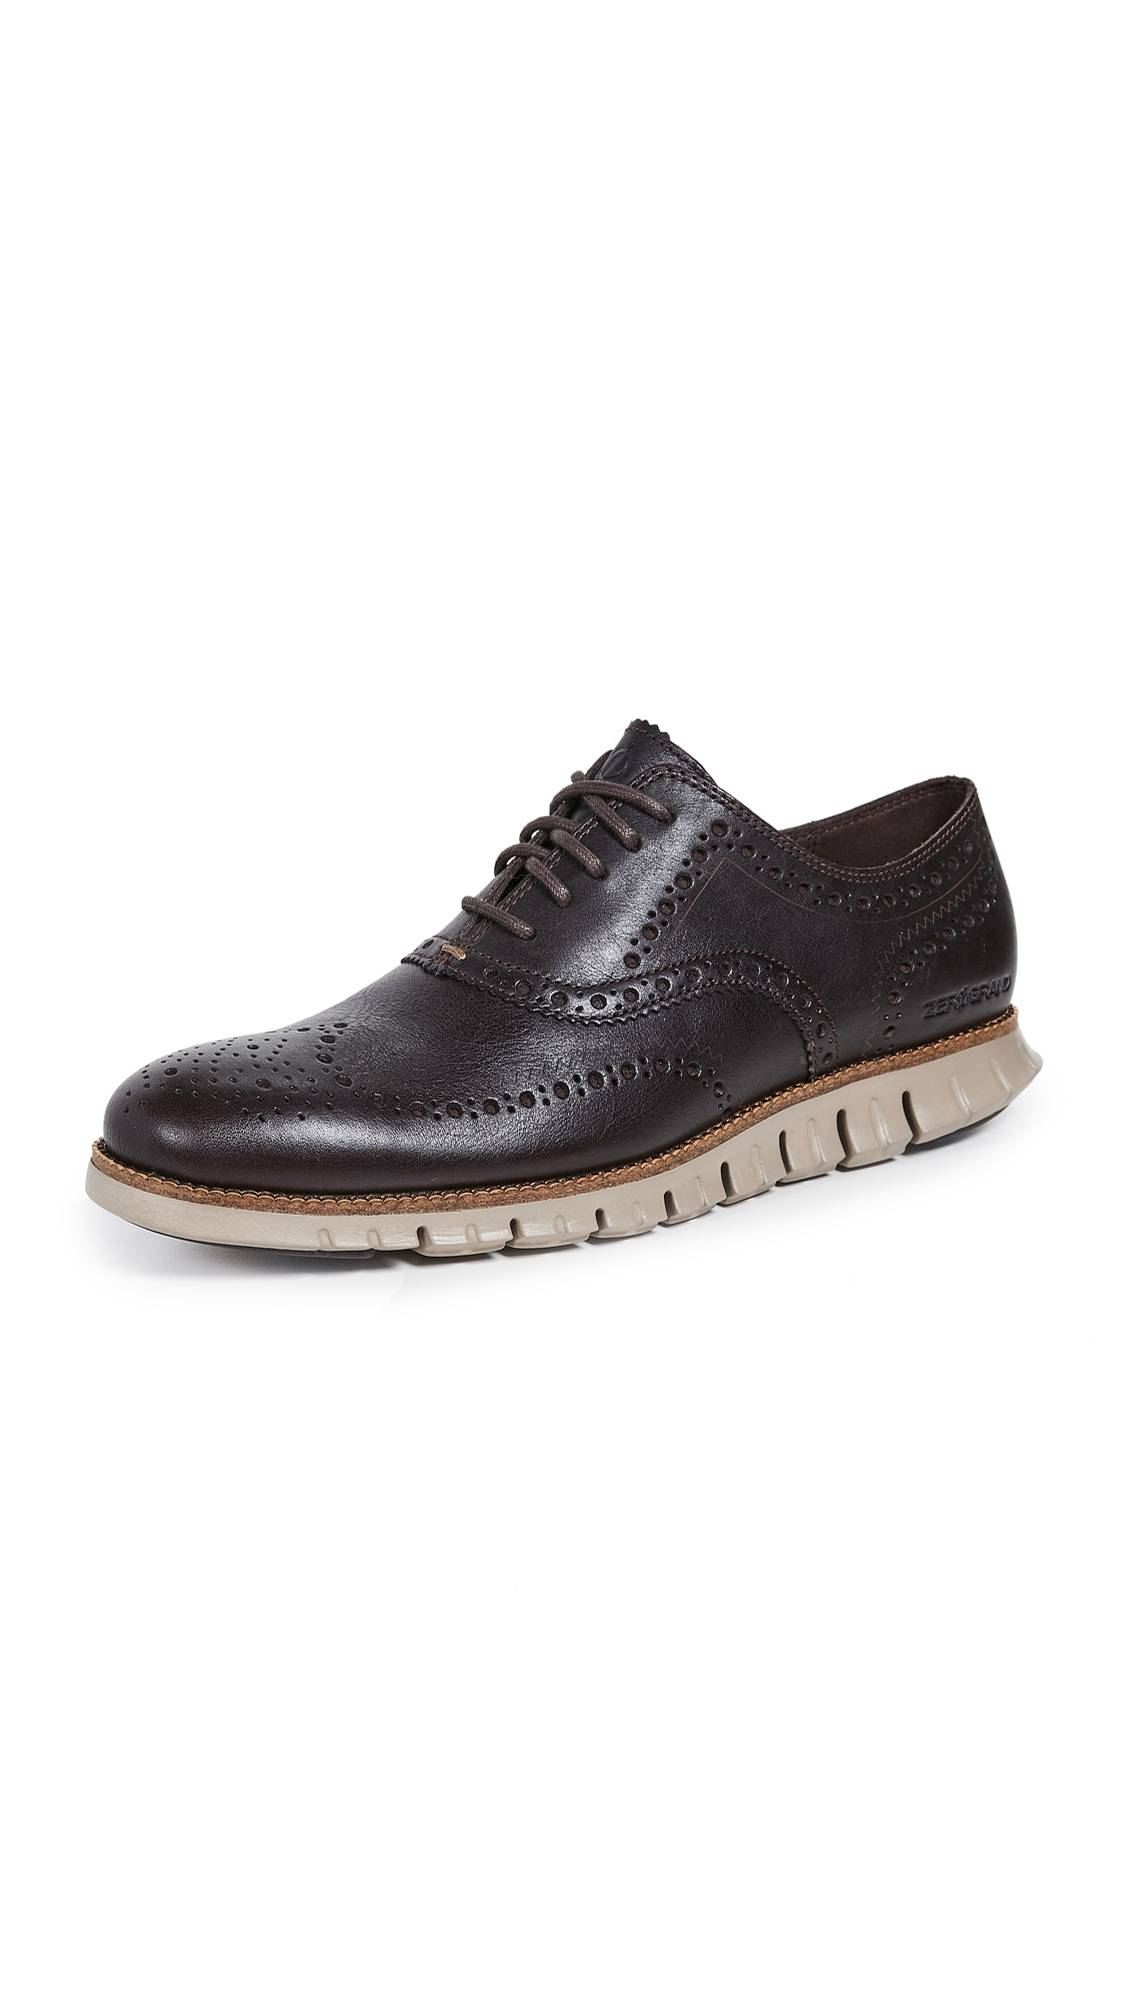 Cole Haan ZeroGrand Wingtip Oxford Shoes - Java - Size: 8.5